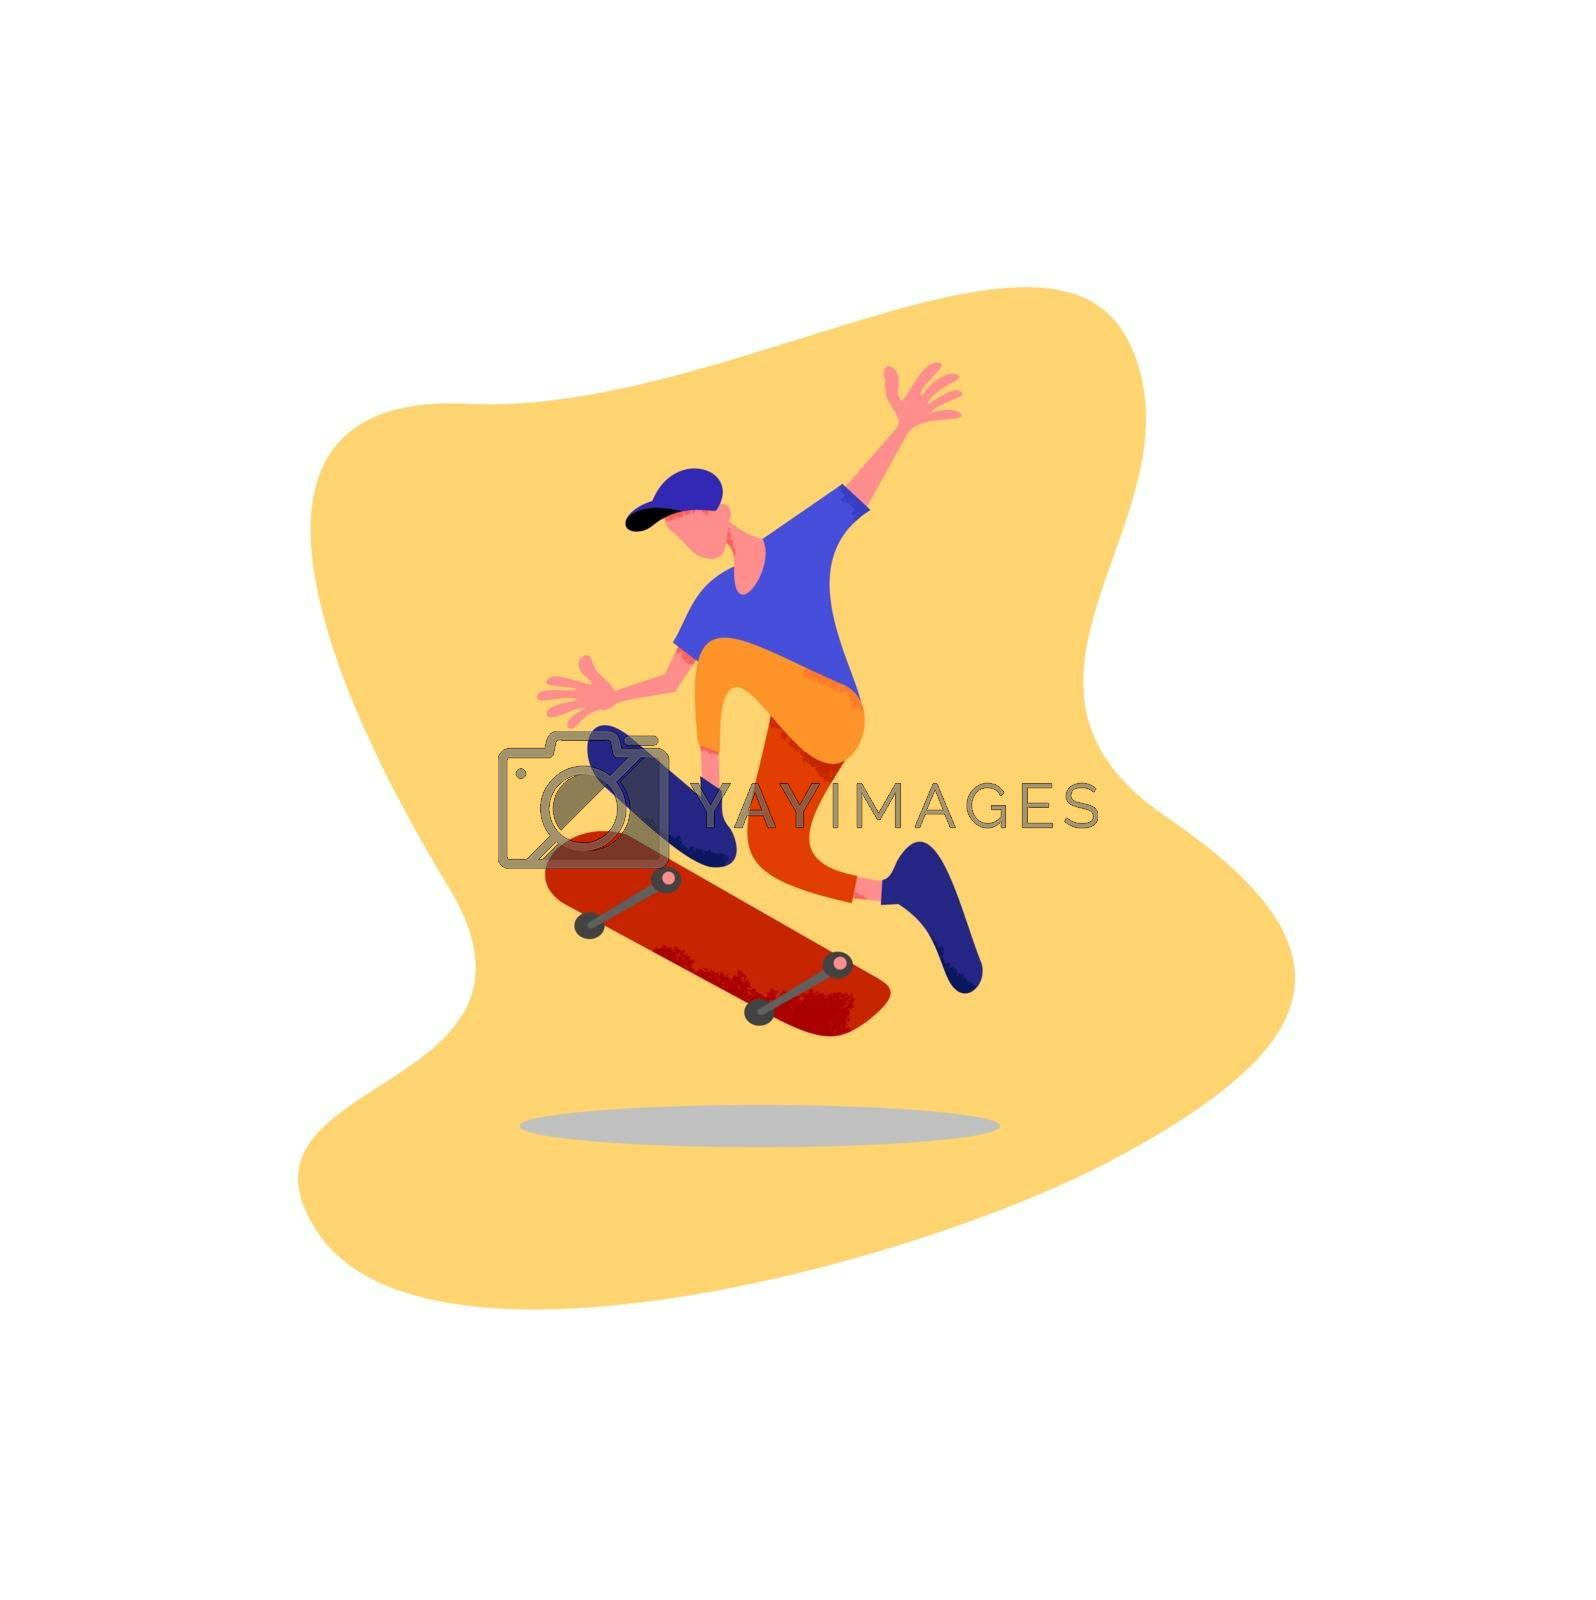 characters skateboarding style skaters jump with board on springboard